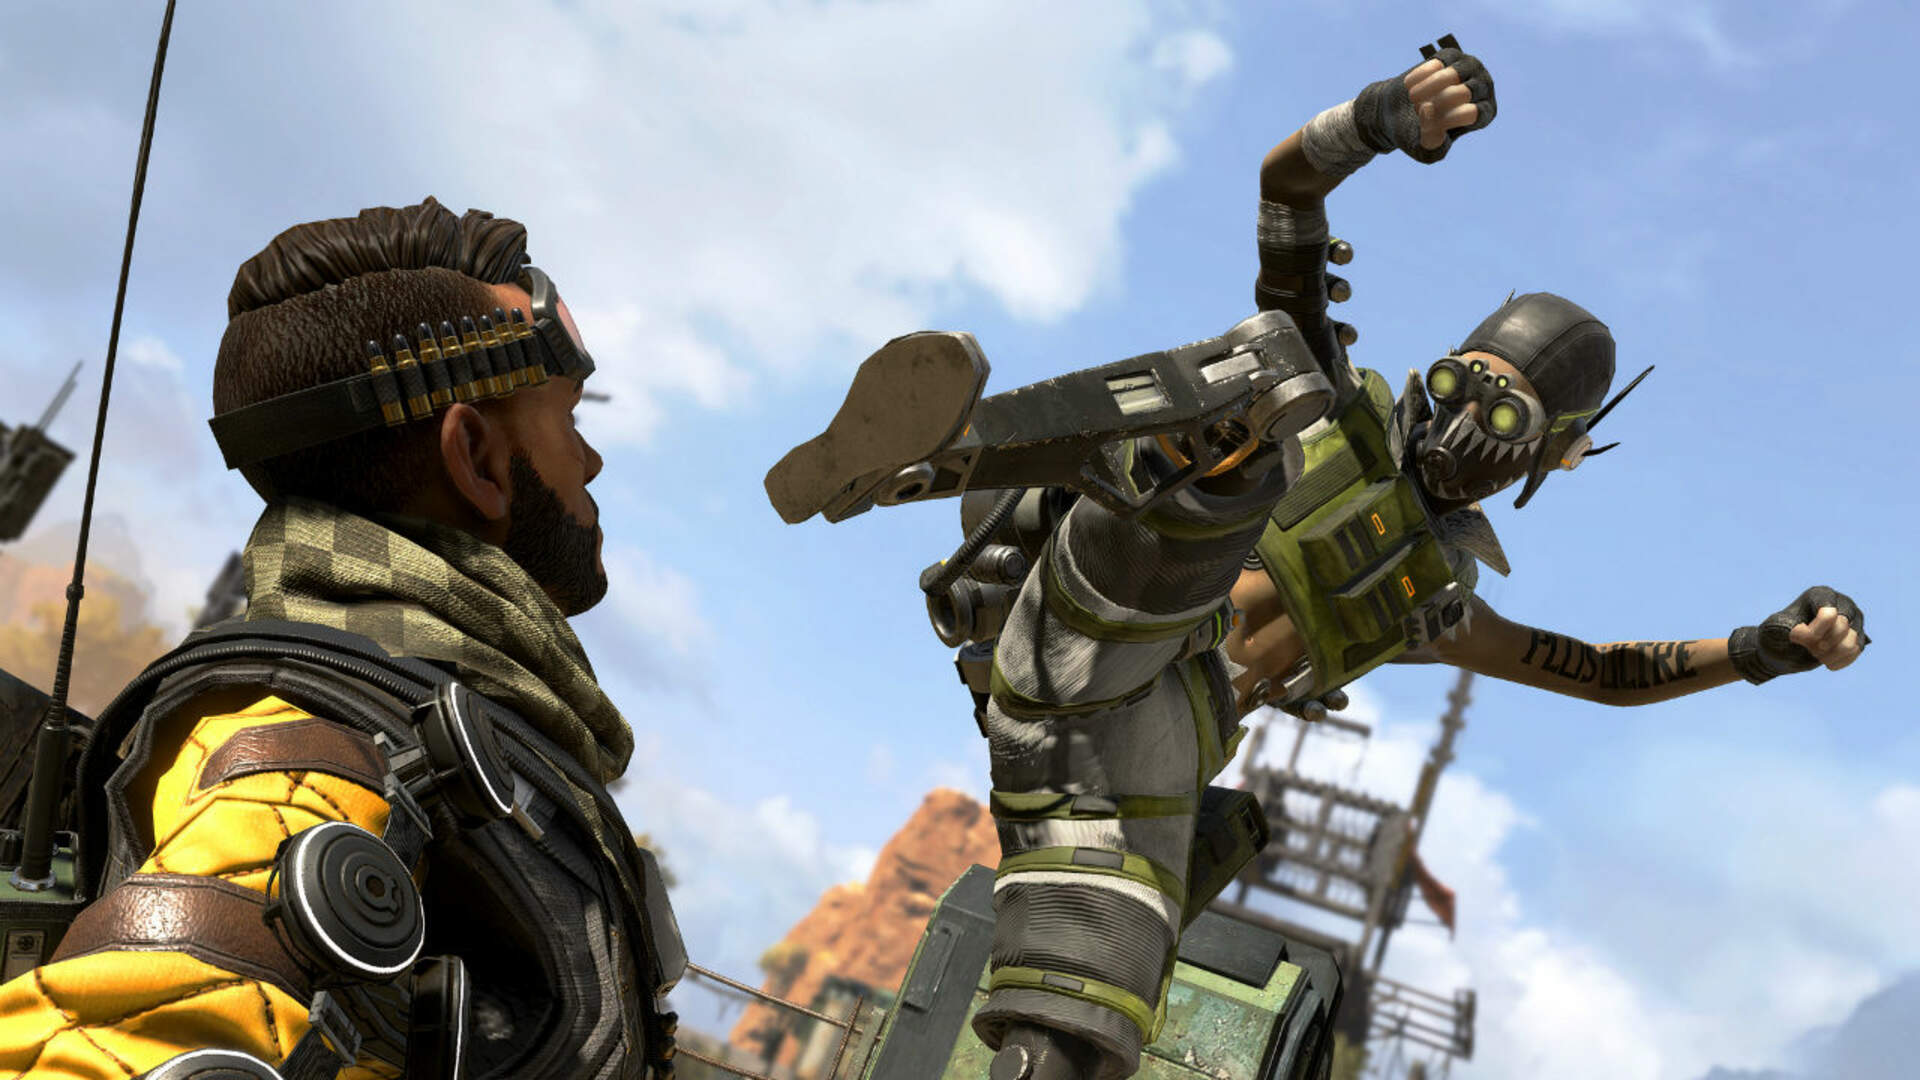 Apex Legends' First Battle Pass Drops Tomorrow: Rewards, New Character Revealed